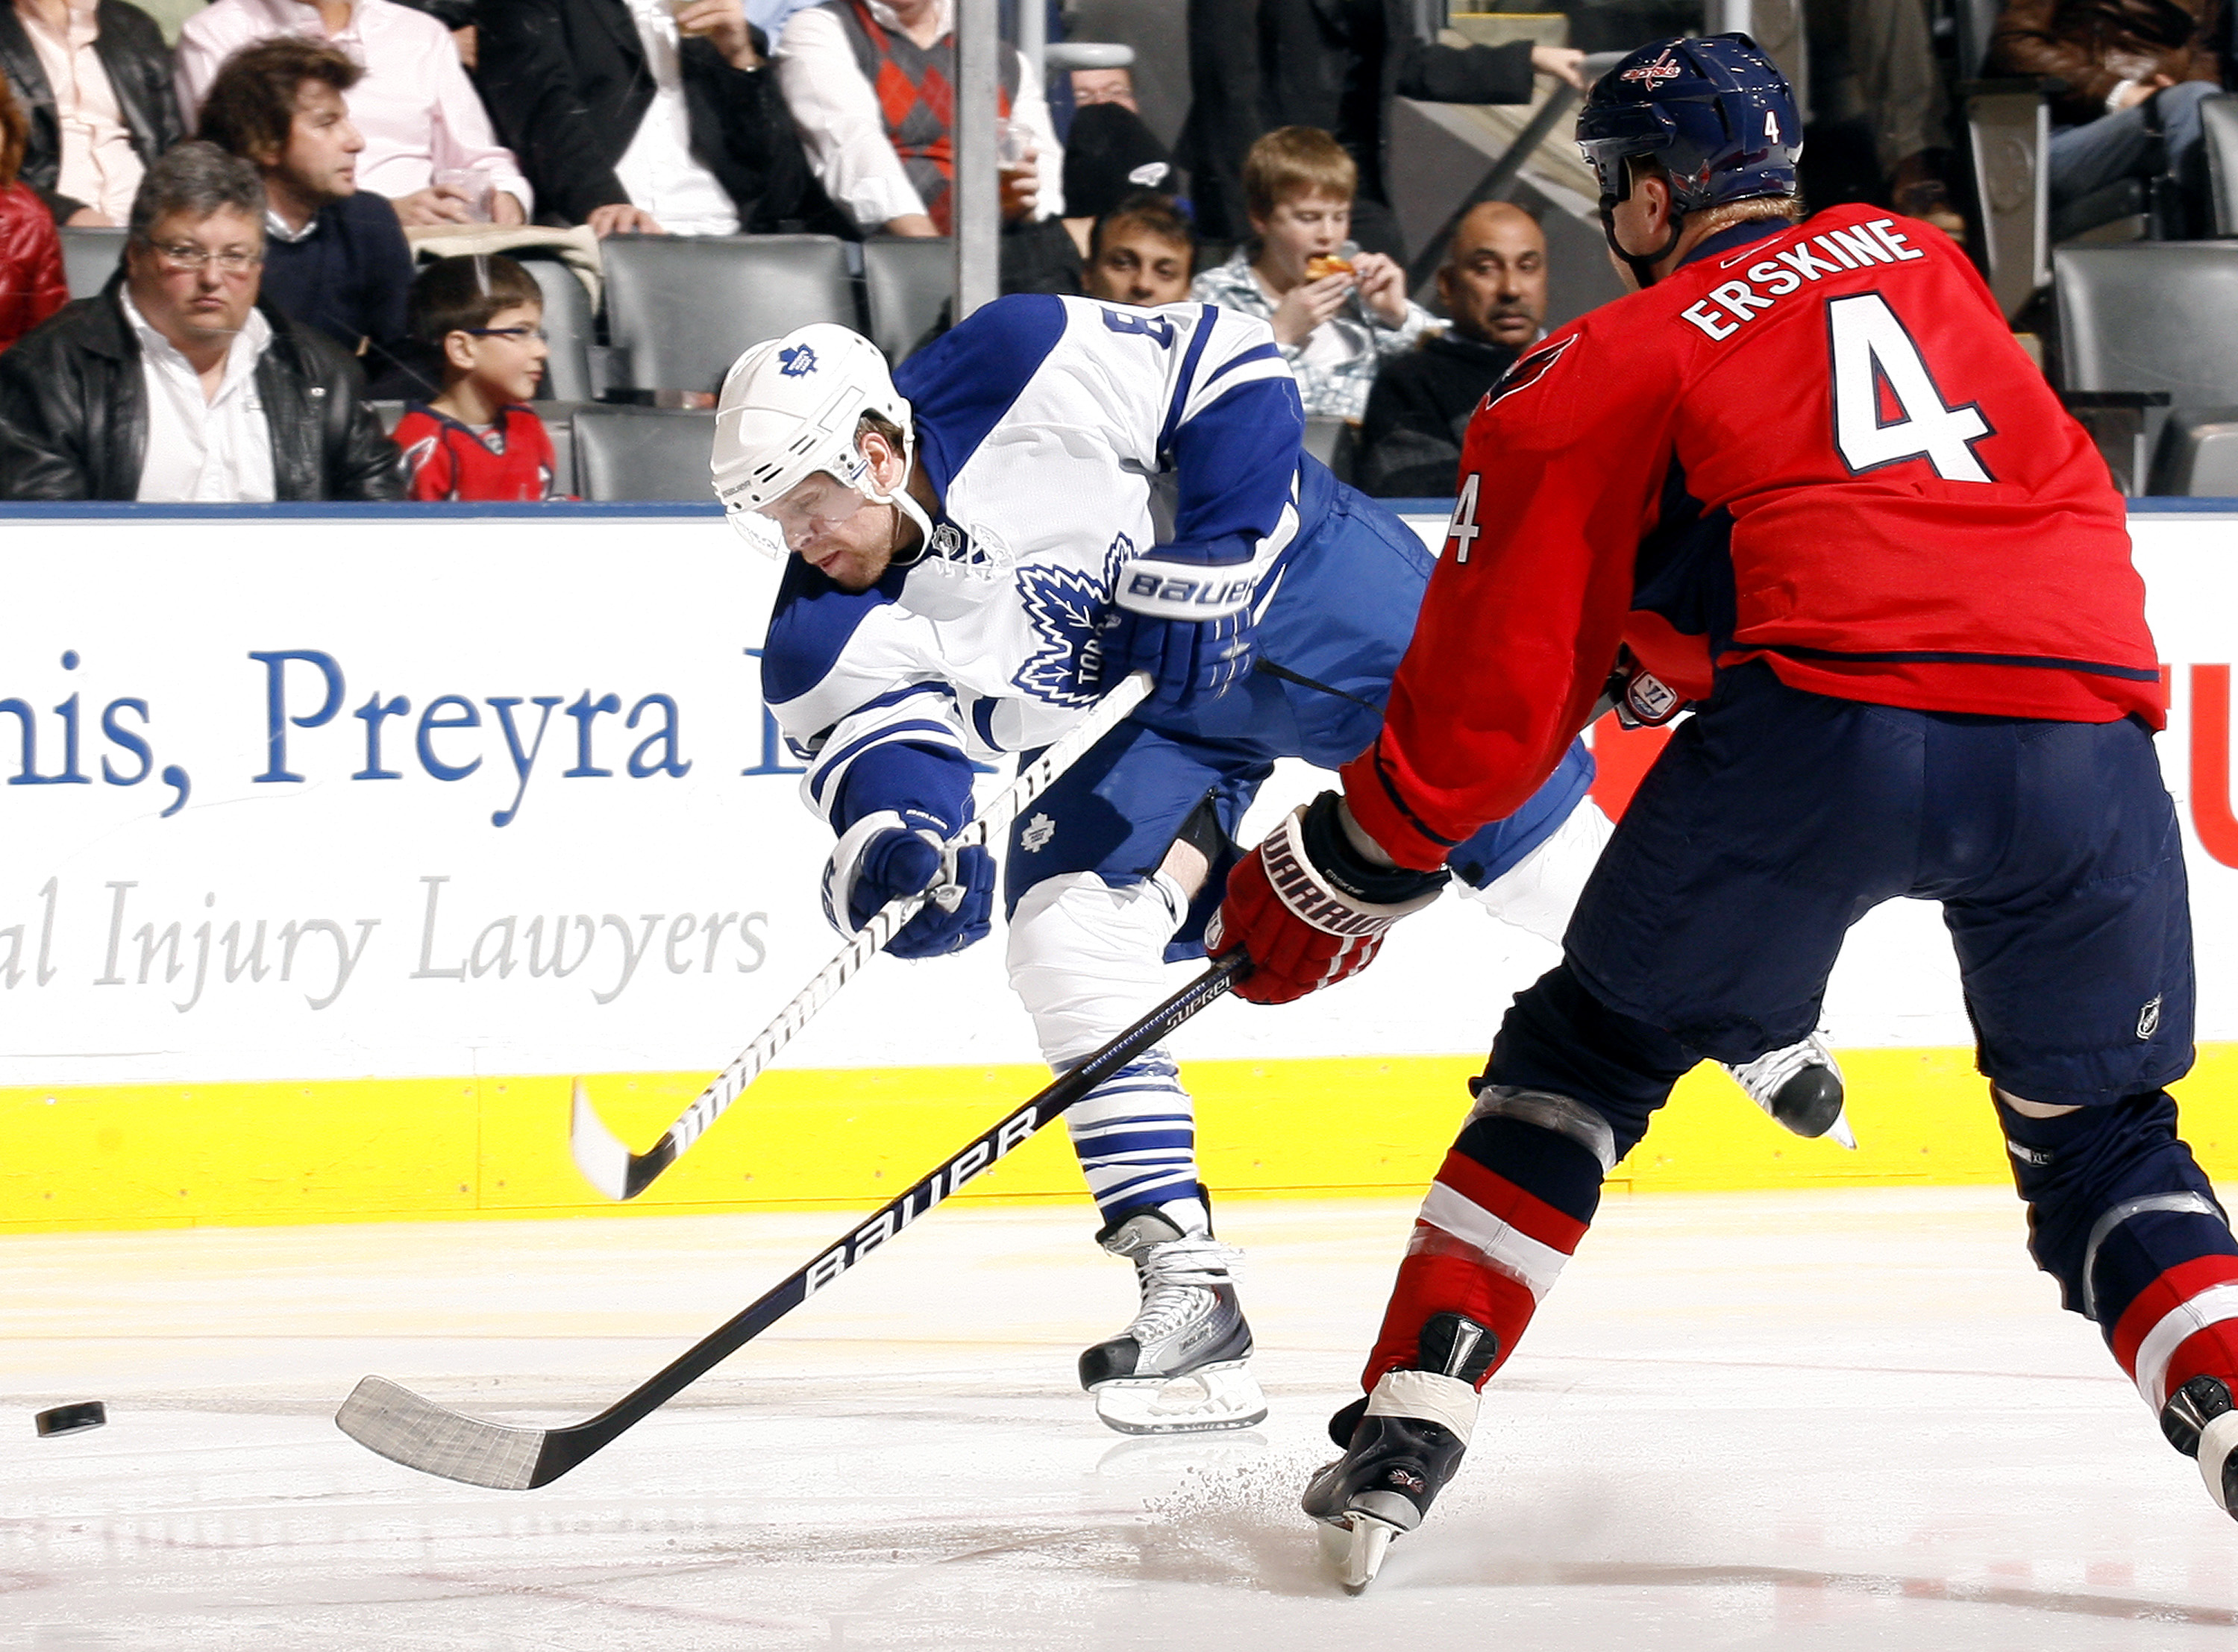 TORONTO - NOVEMBER 21:  Phil Kessel #81 of the Toronto Maple Leafs shoots past John Erskine #4 of the Washington Capitals during game action November 21, 2009 at the Air Canada Centre in Toronto, Ontario, Canada. (Photo by Abelimages/Getty Images)